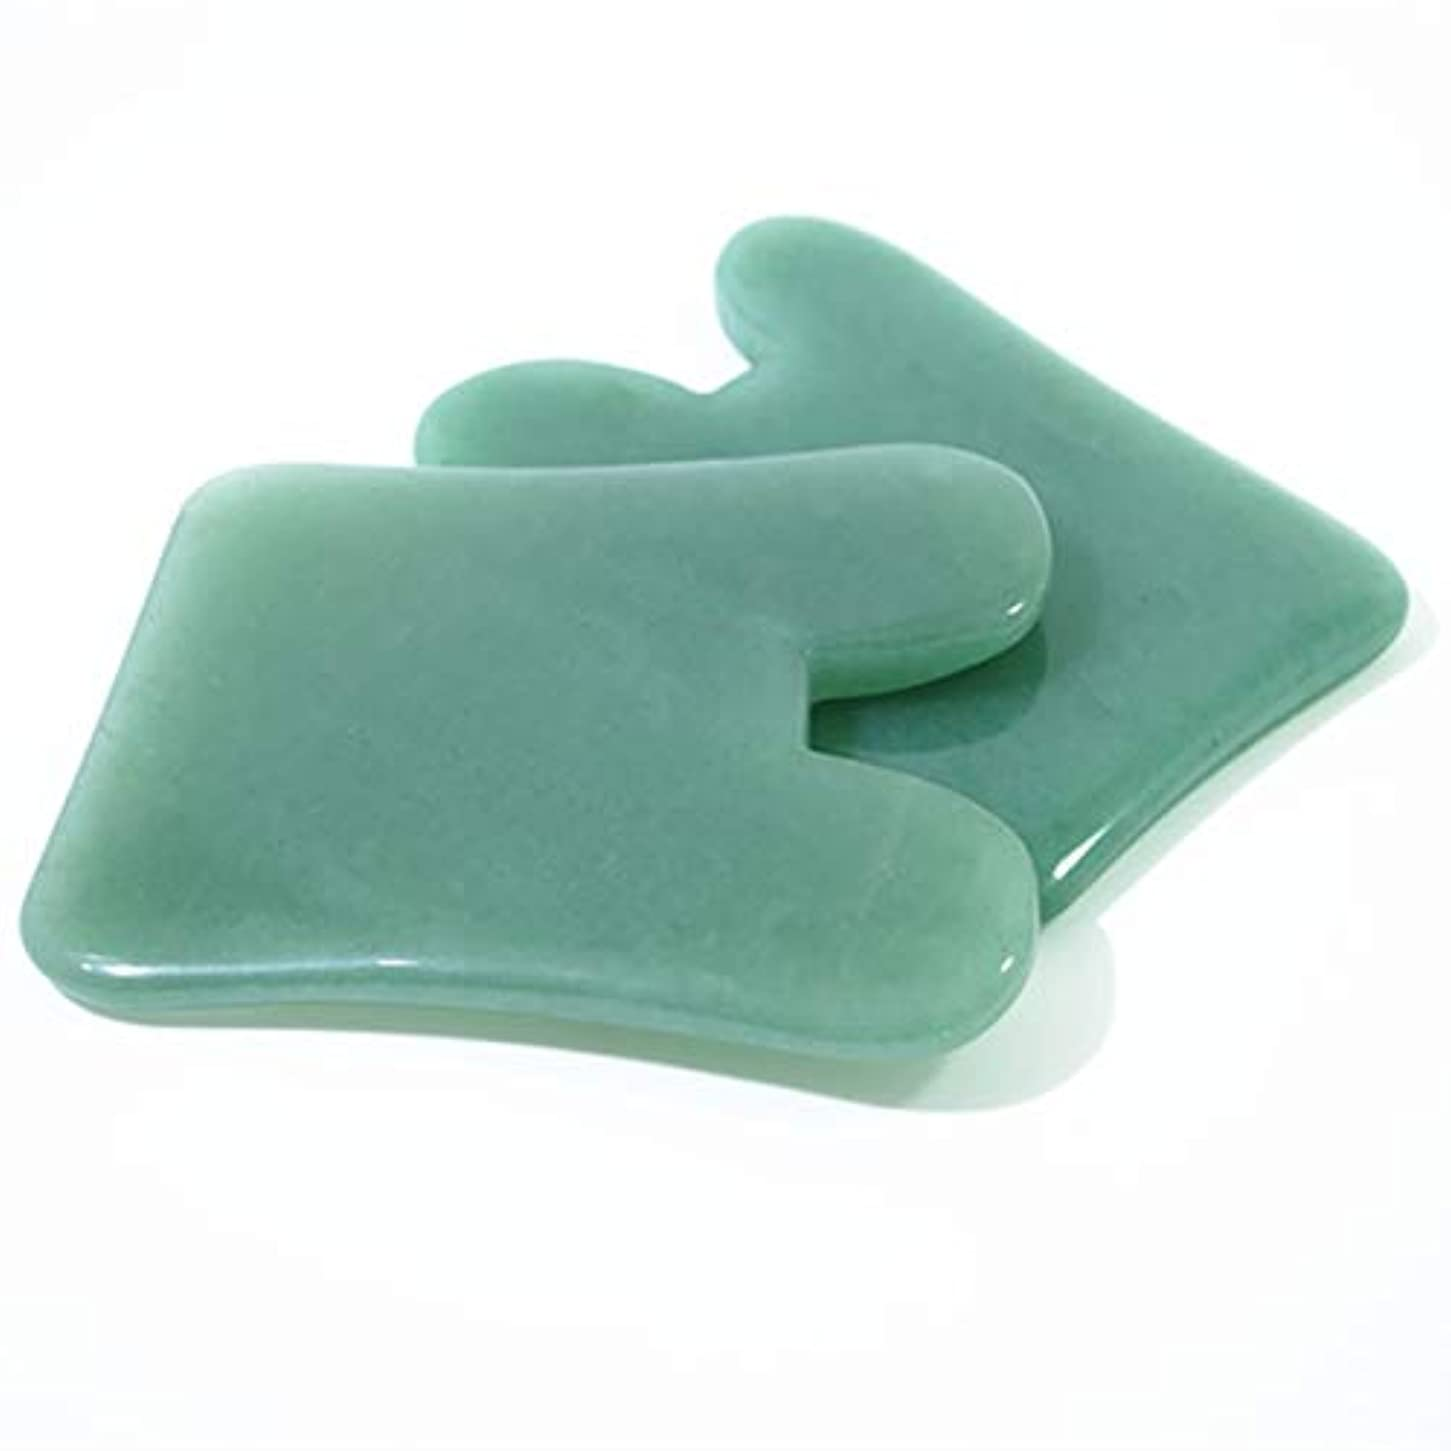 輪郭ソフトウェア目立つNatural Portable Size Gua Sha Facial Treatment Massage Tool Chinese Natural Jade Scraping Tools Massage Healing...